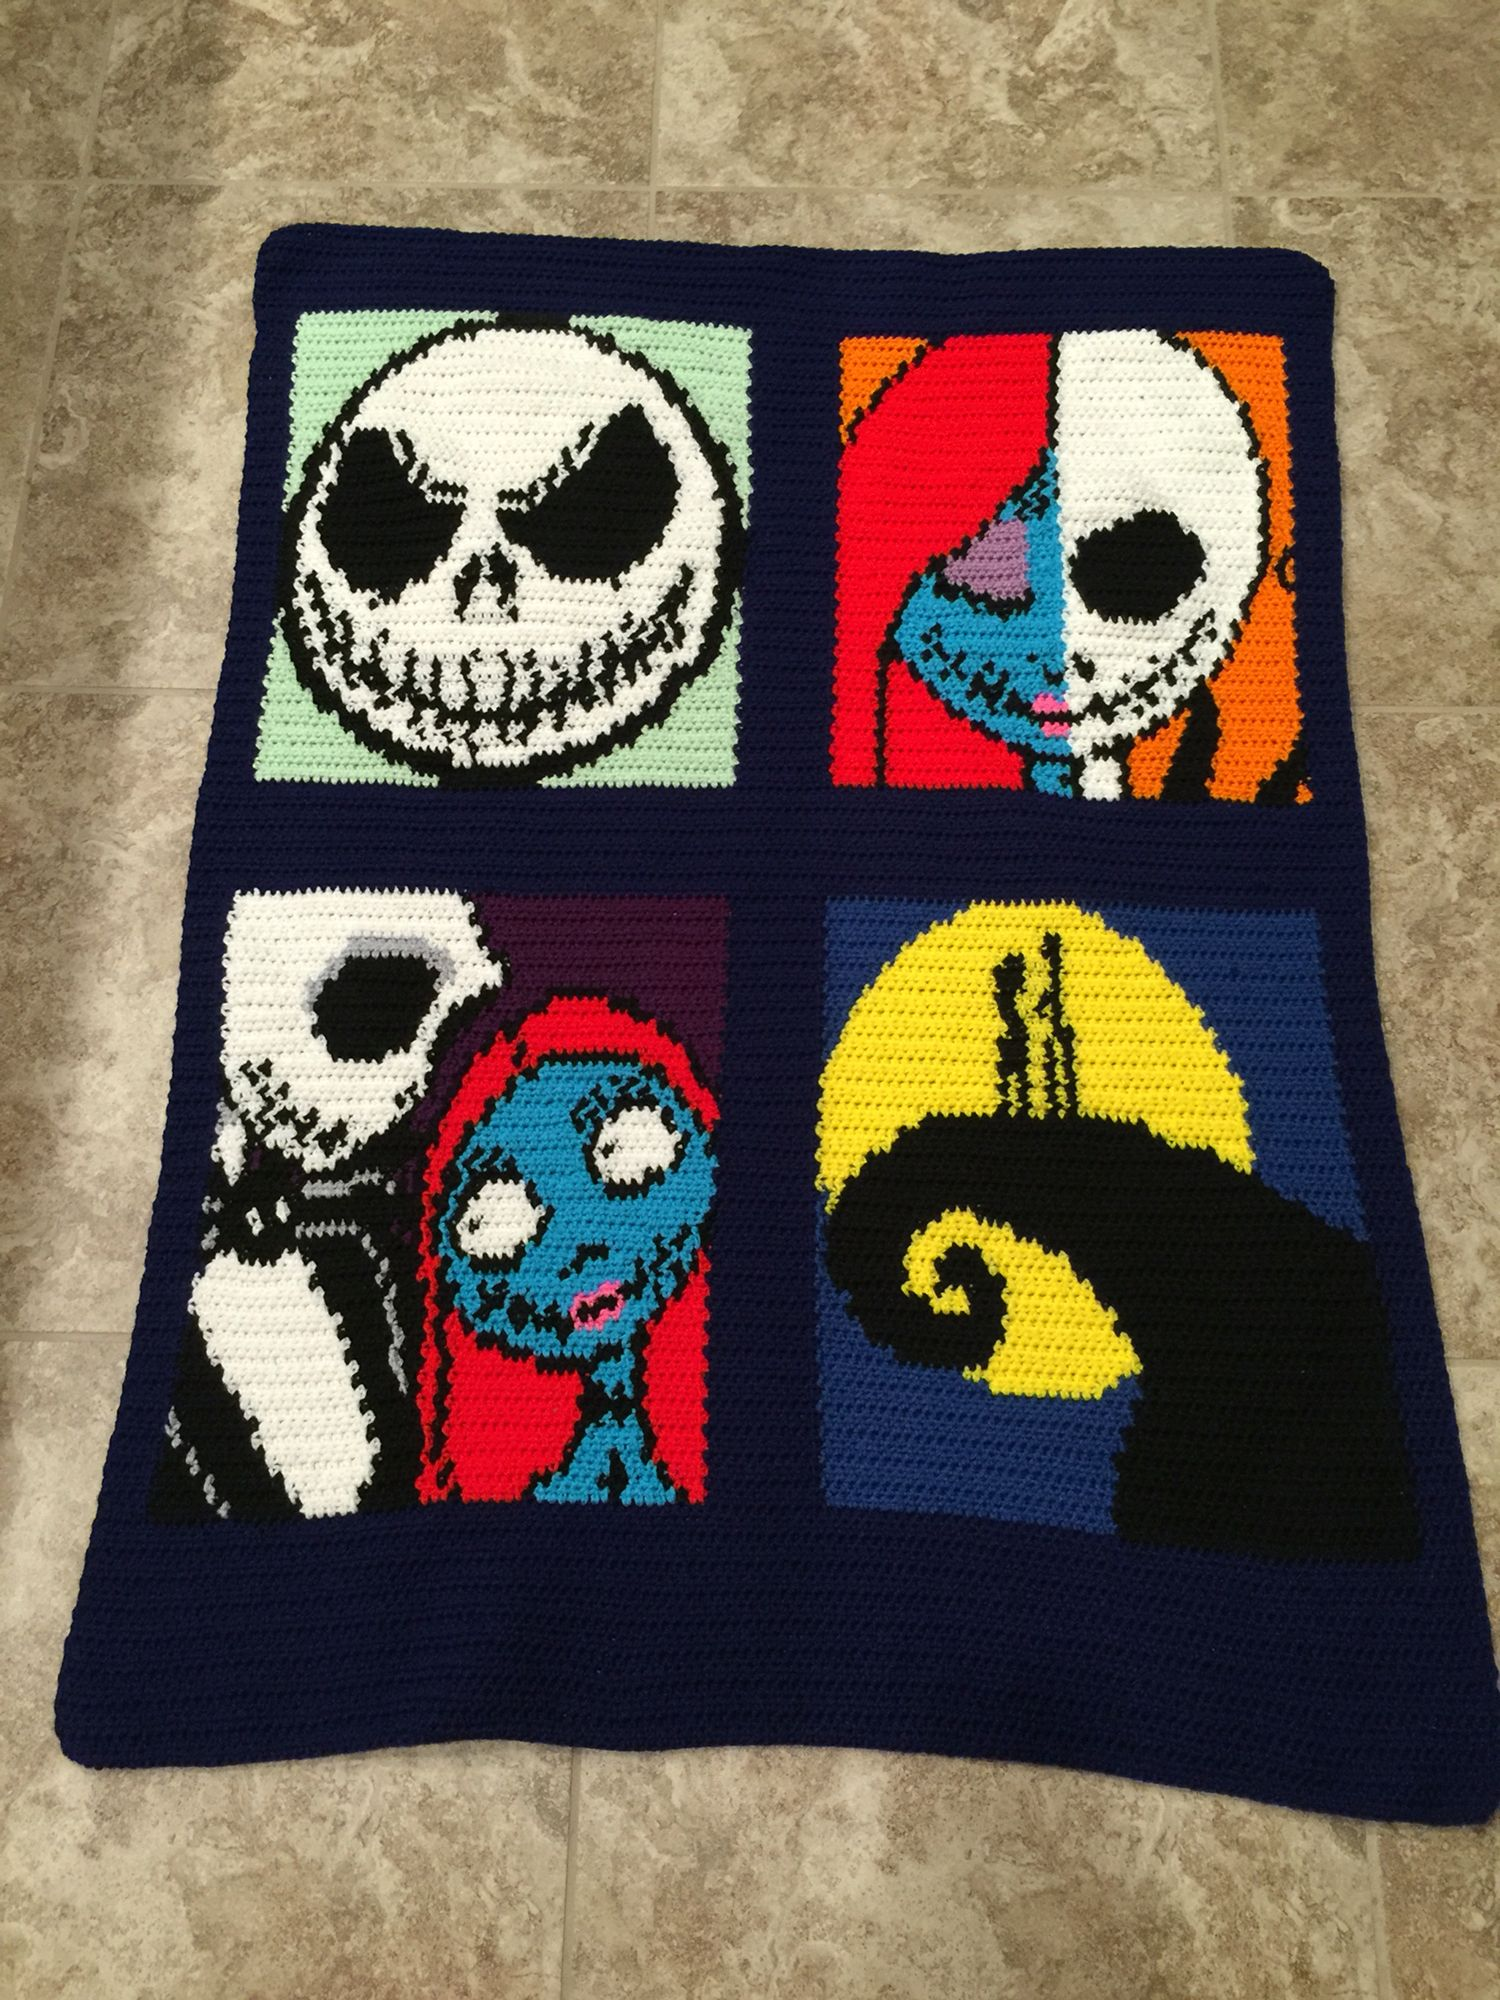 nightmare before christmas made for v_nessa_og hopefully the kiddos dont steal this one crochetcrazy stuffimake graphgan vanessa ong - When Was The Nightmare Before Christmas Made